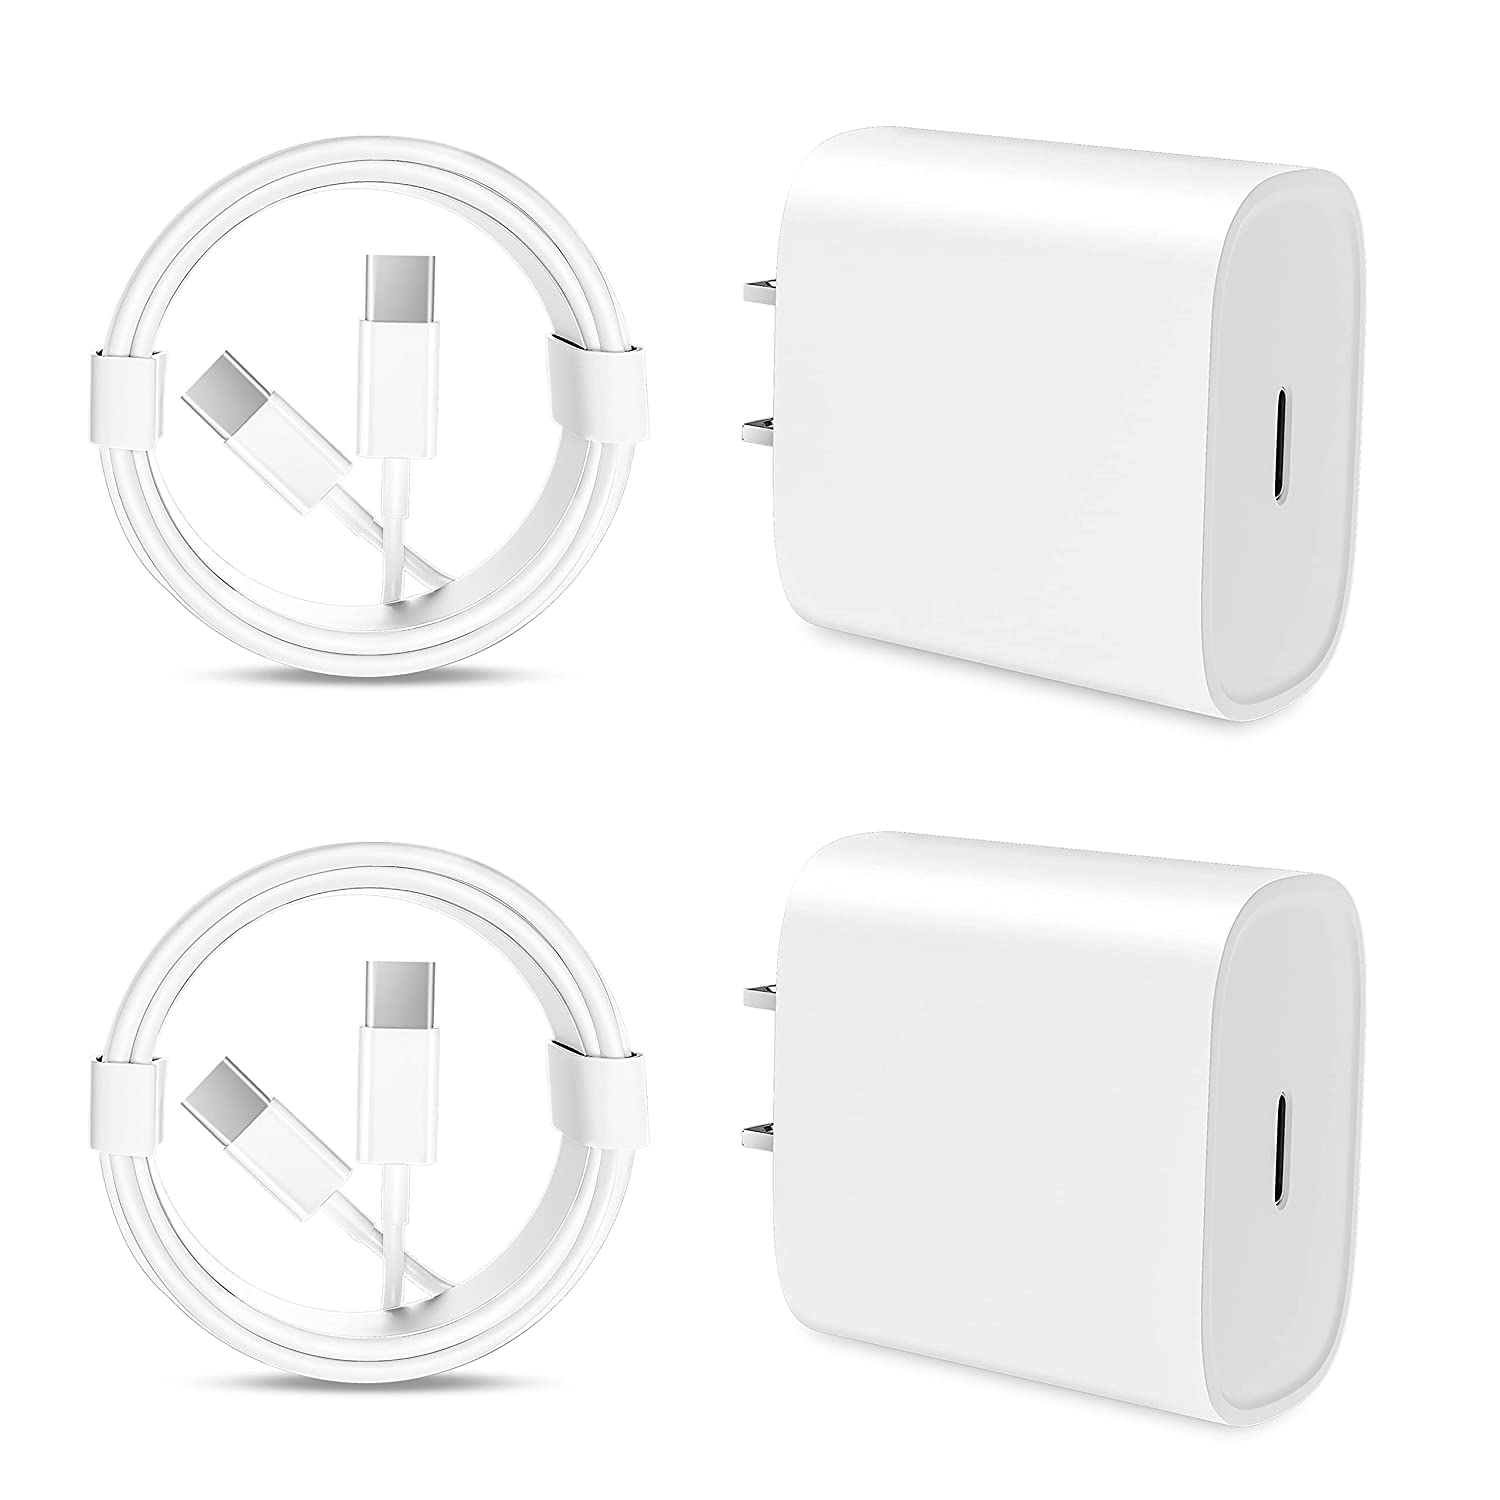 iPad Pro Charger 20W USB C Charger for iPad Pro 12.9 5th/4th/3rd Gen,iPad Pro 11 inch 3rd/2nd/1st Gen 2021/2020/2018,iPad Air 4th Generation 2020,iPad Mini 6 Generation 2021,6.6ft USB C Cable[2-Pack]